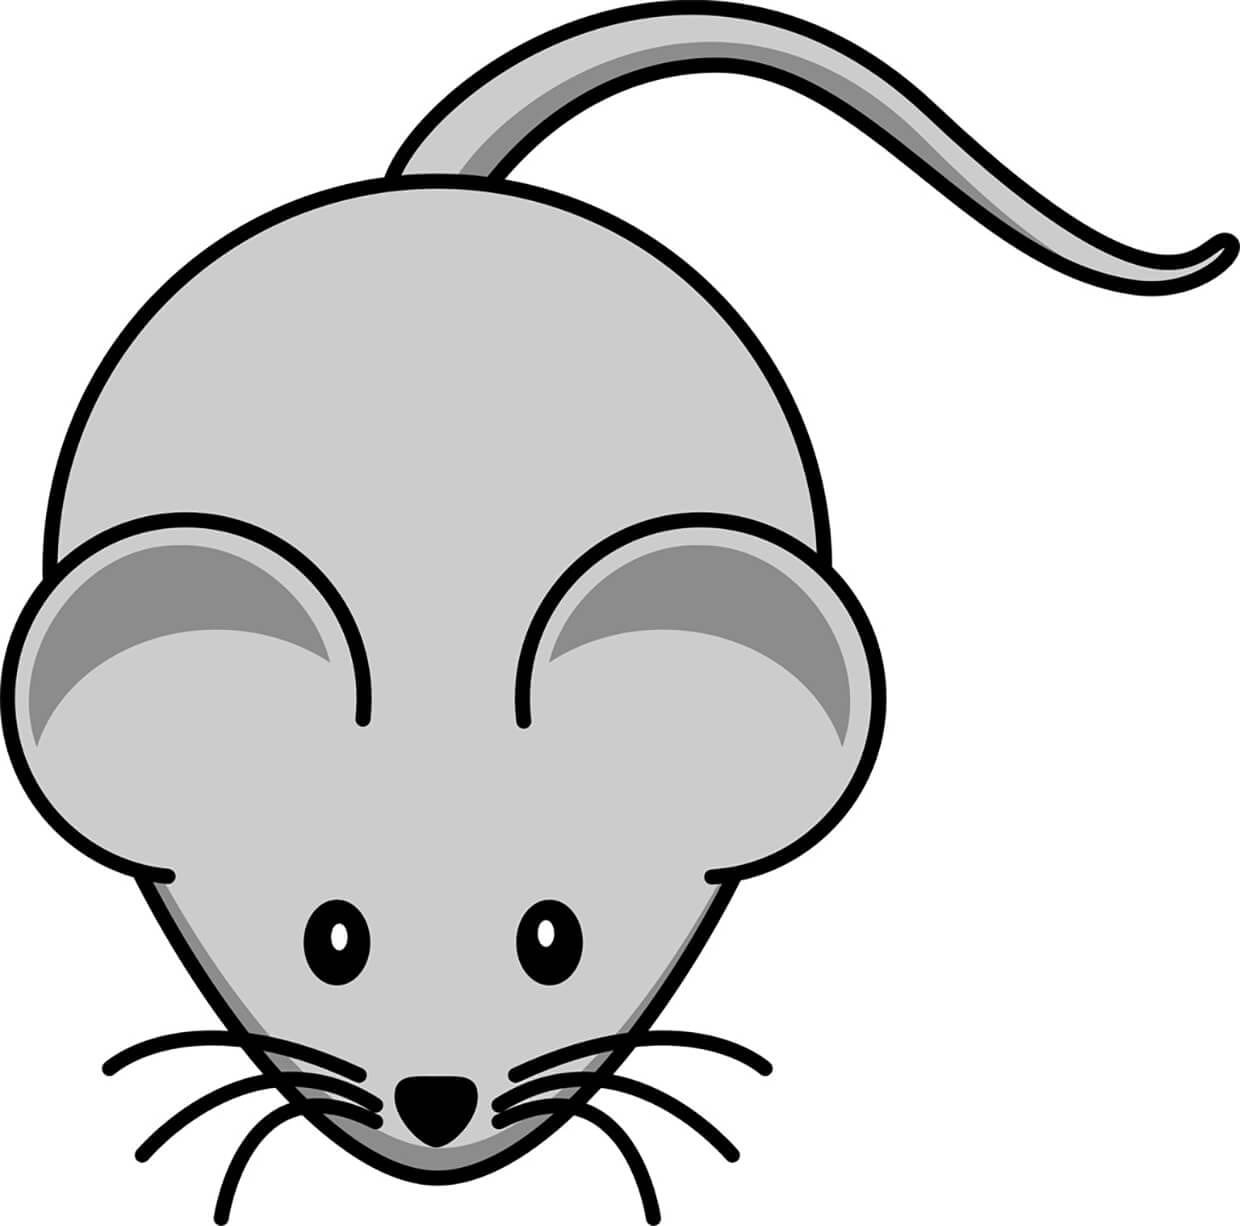 Mouse picture for kids 2